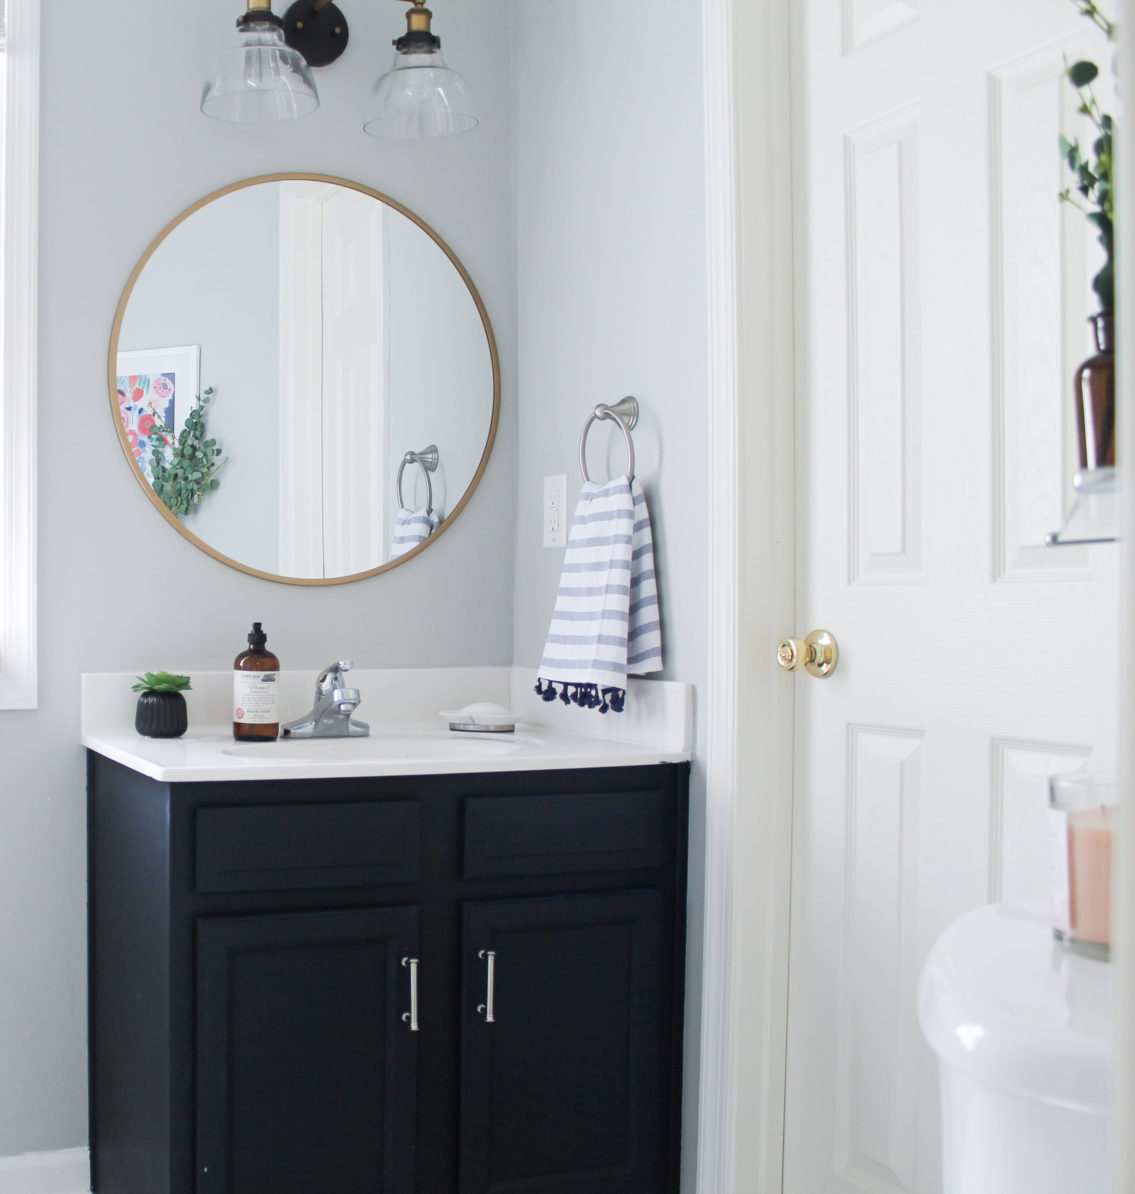 DIY steps for powder room project in this navy and gold bathroom